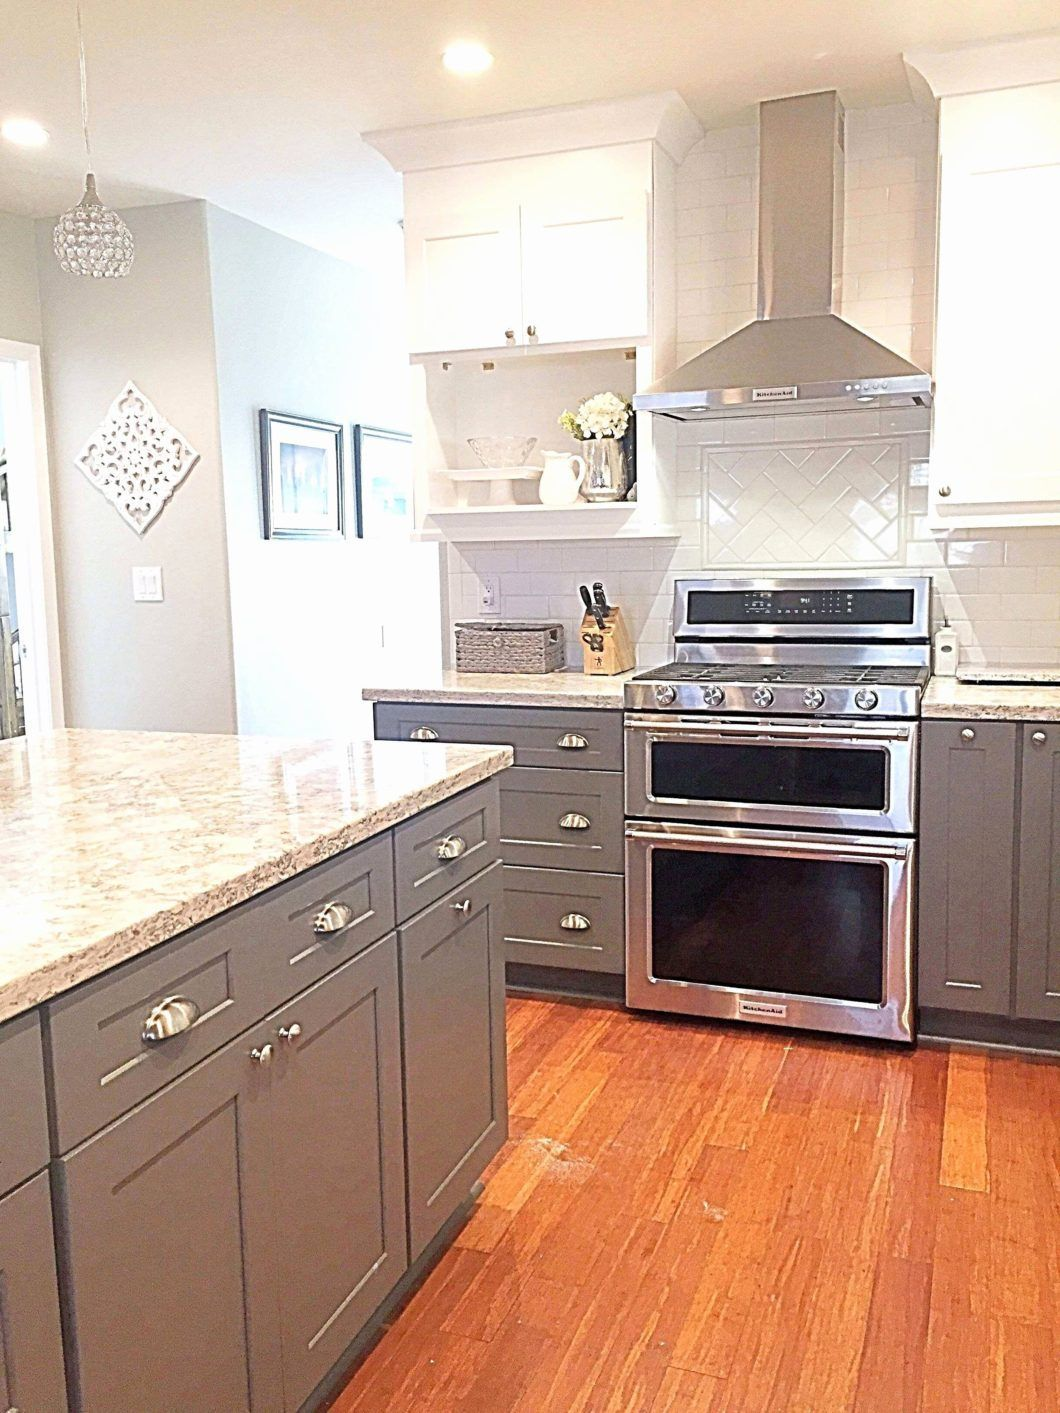 How Paint Your Kitchen Cabinets Without Sanding New Change Cabinet Color Updating Replacing Grey Kitchen Cabinets Kitchen Cabinet Design Kitchen Cabinet Trends